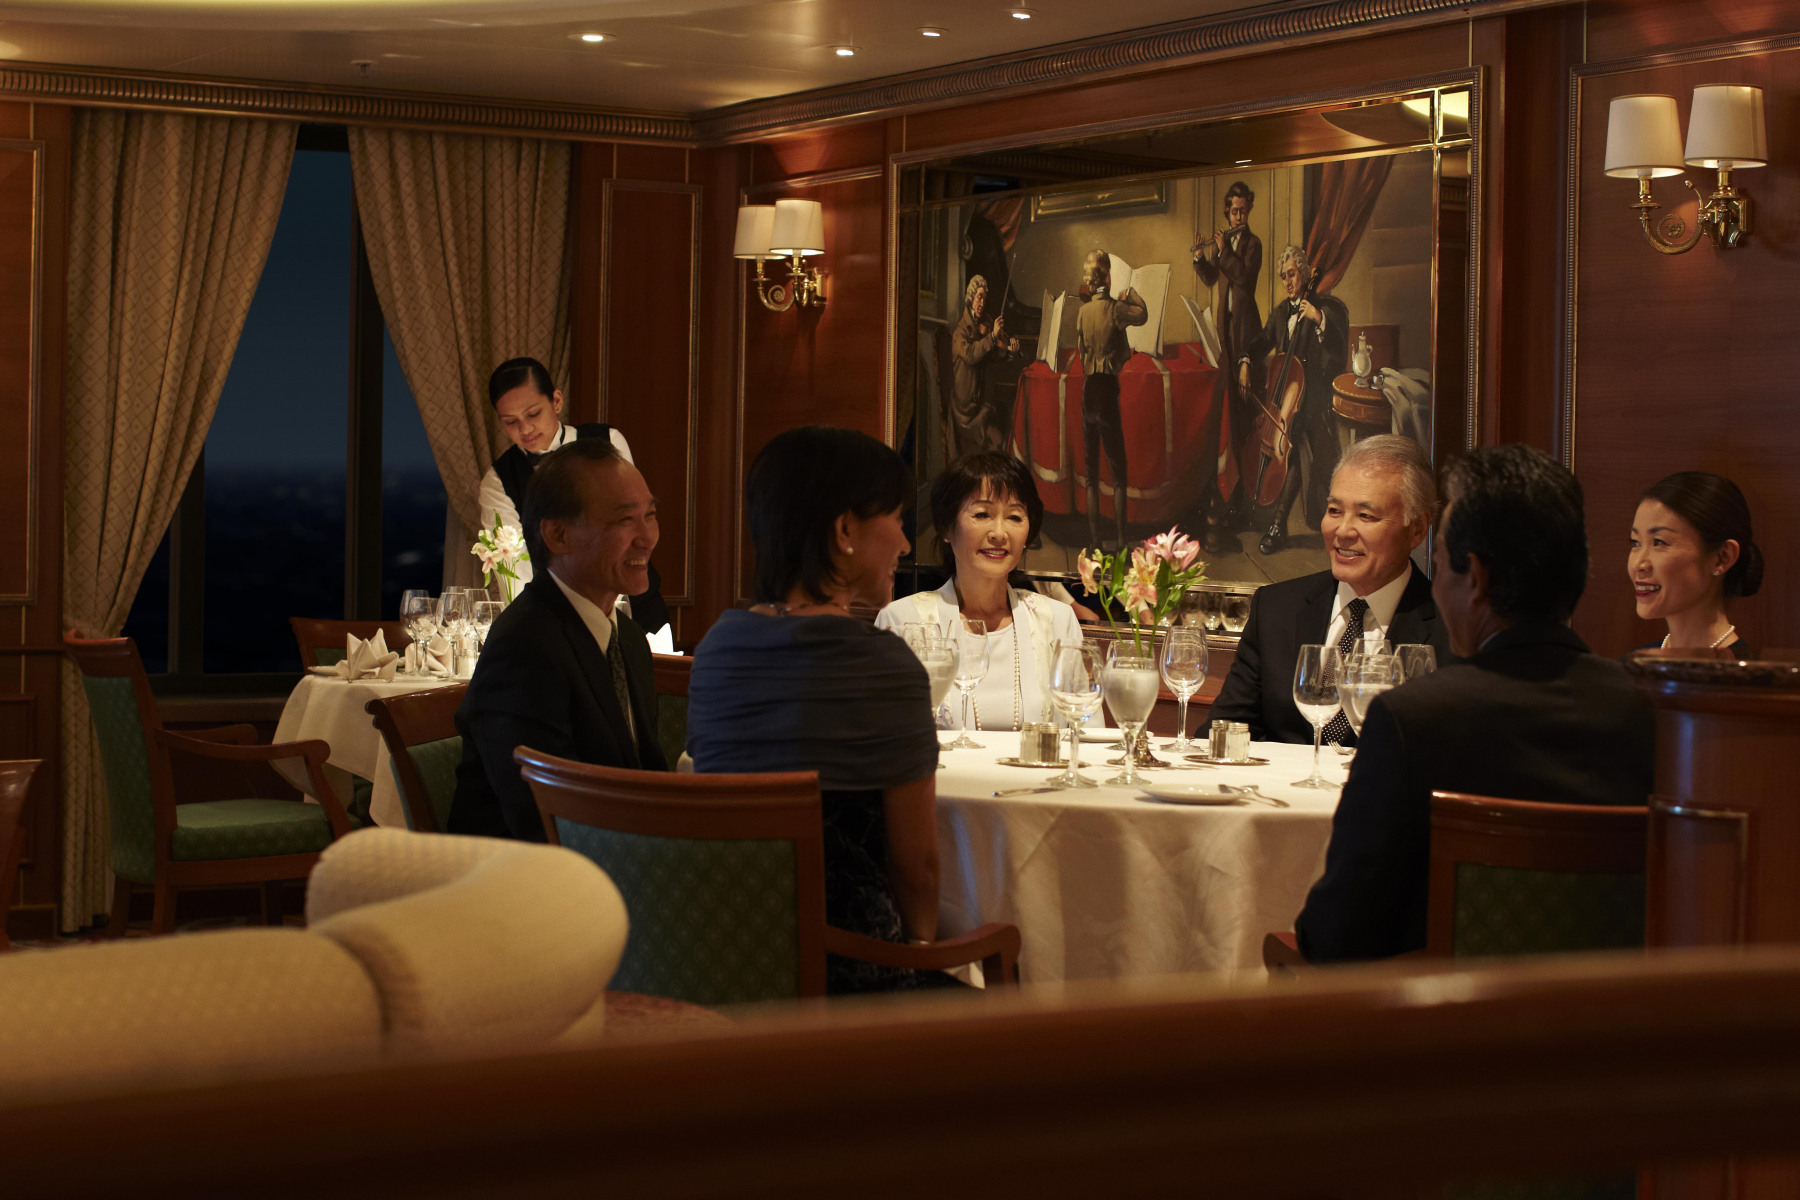 Princess cruises grand class vivaldi dining room.jpg